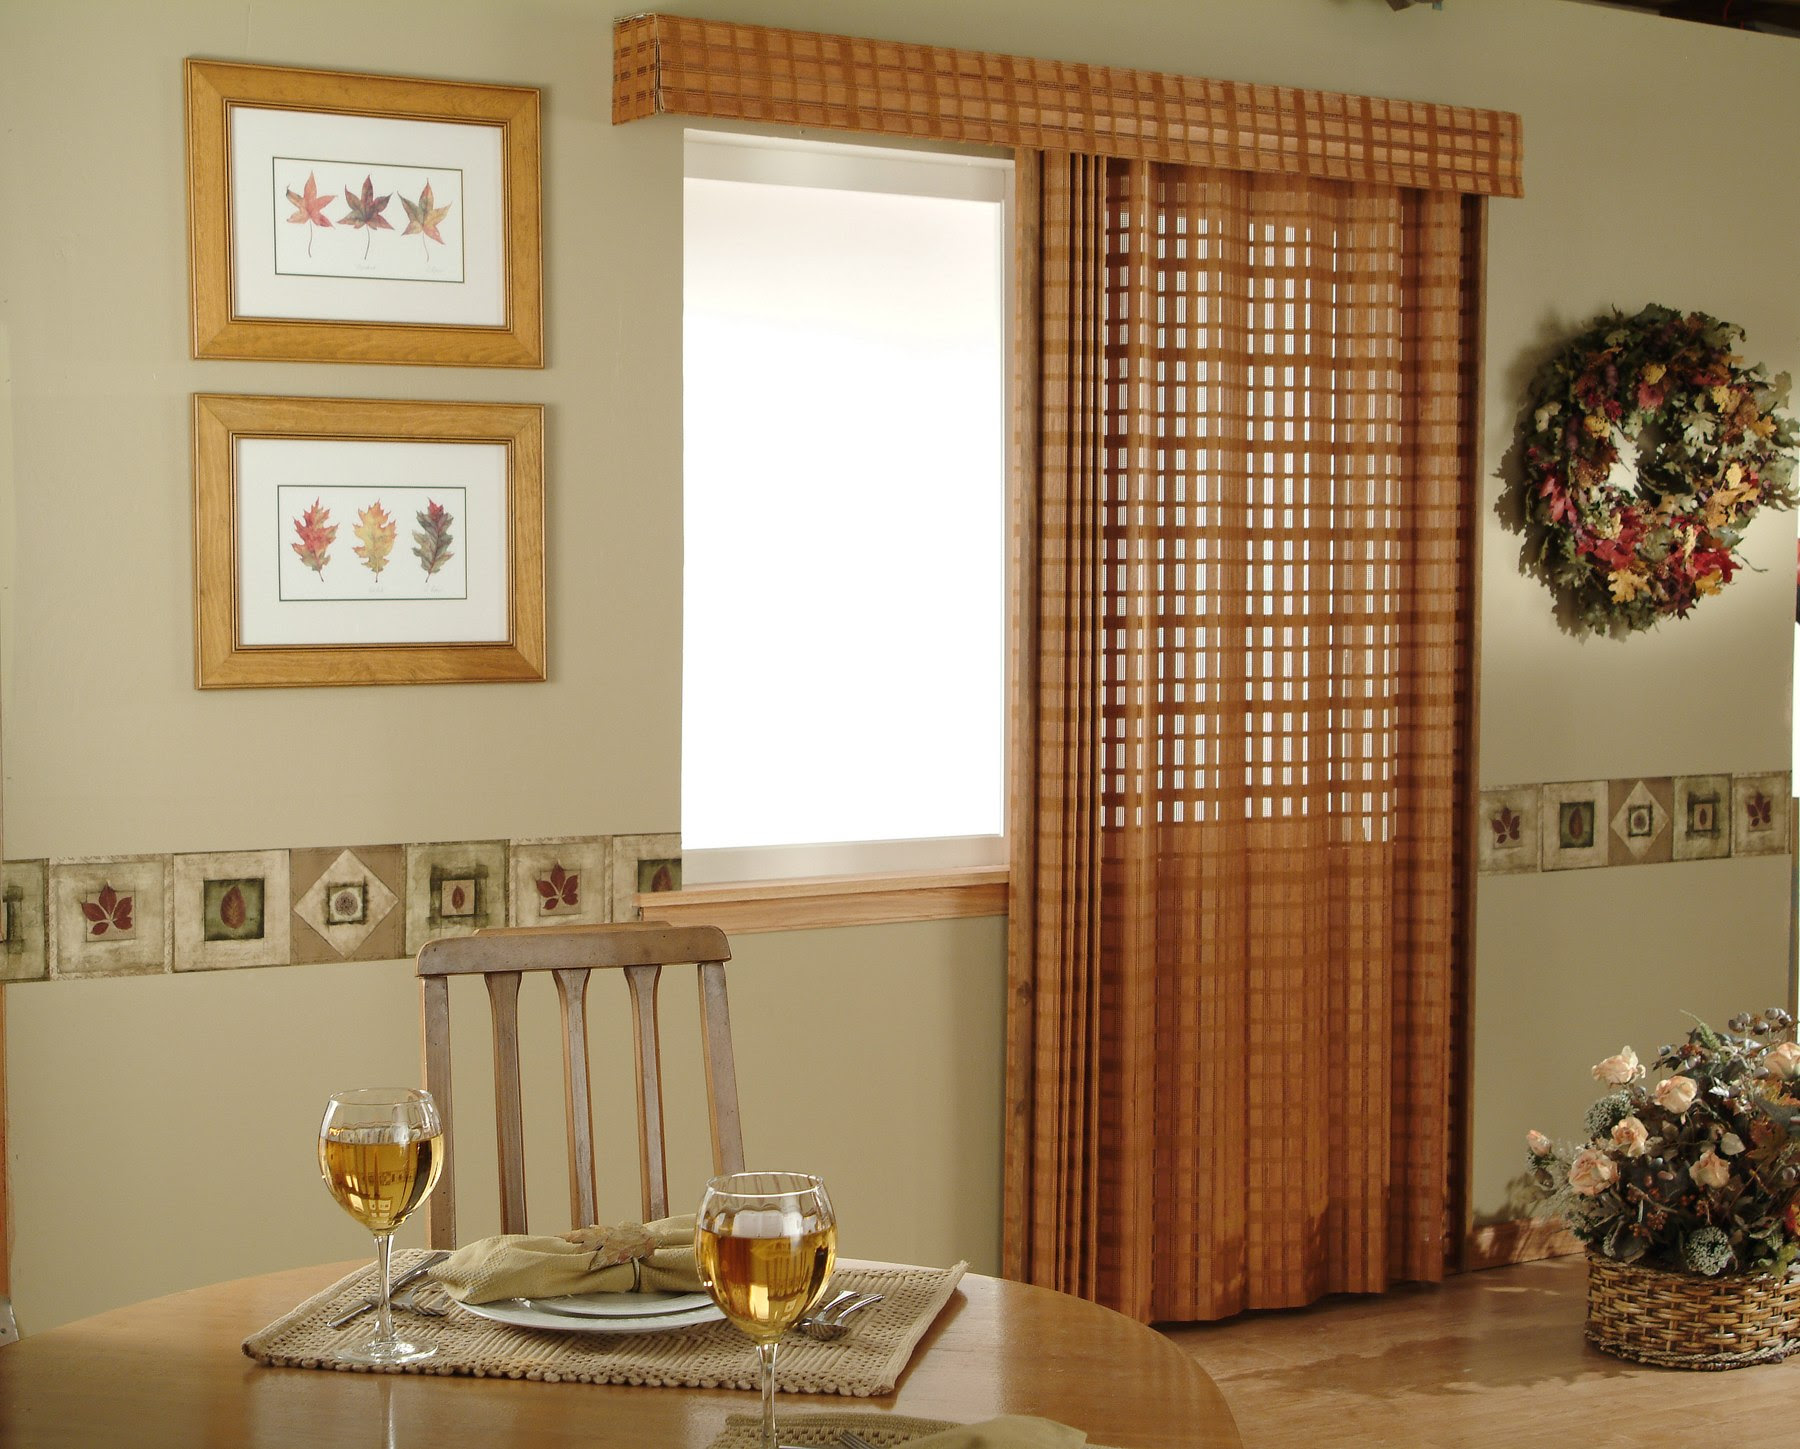 House Window Glass Replacement Vertical Fabric Blinds Patio Doors